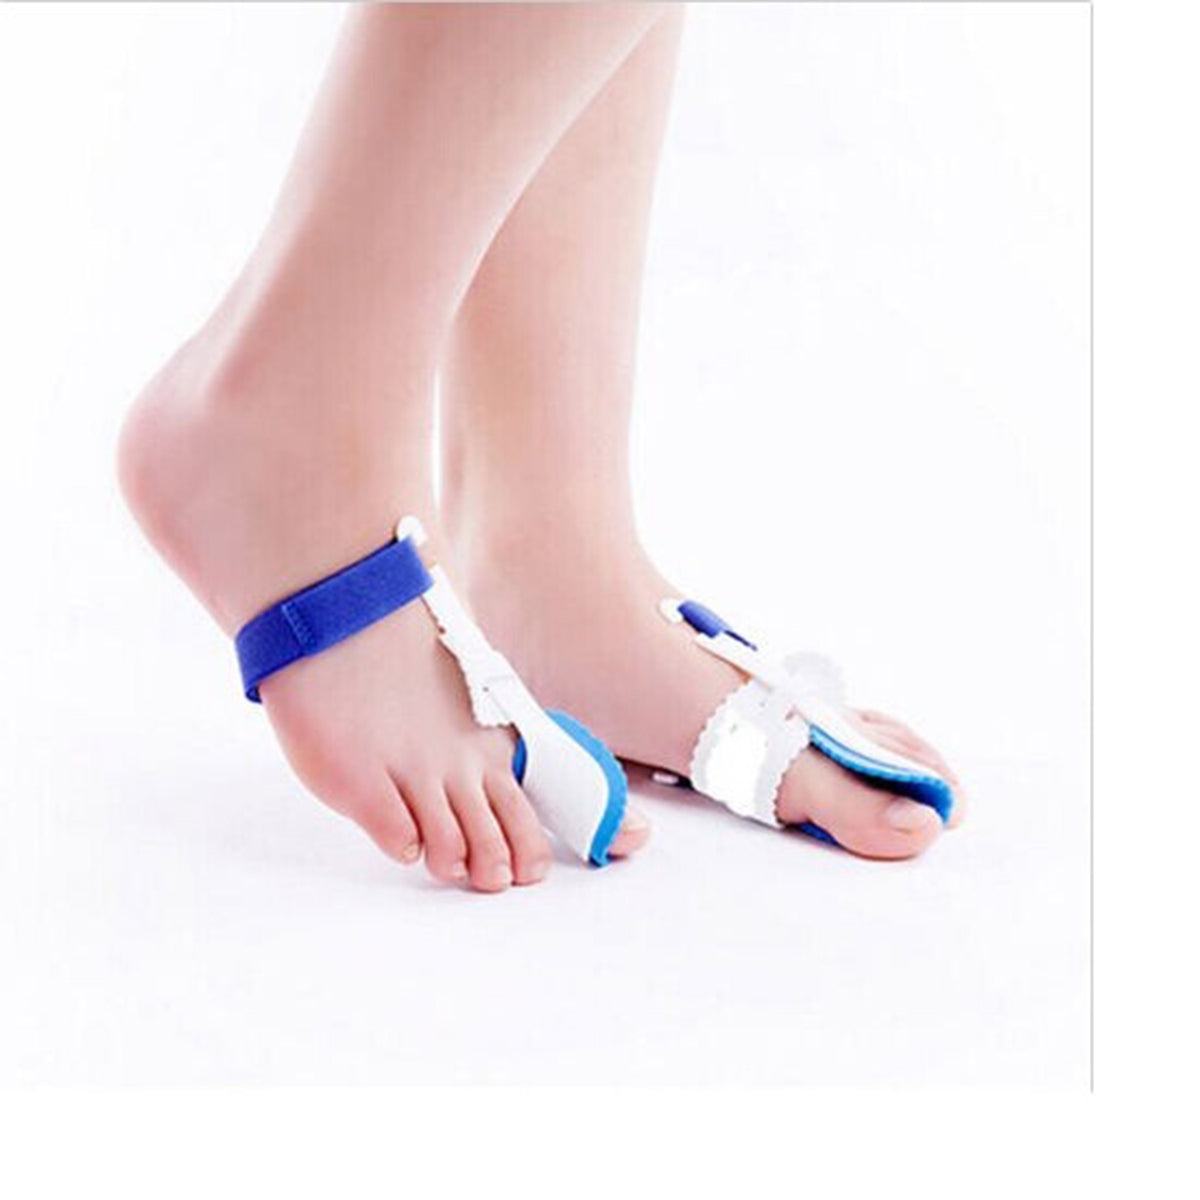 Non-Surgical Pain Relief Night Bunion Splint